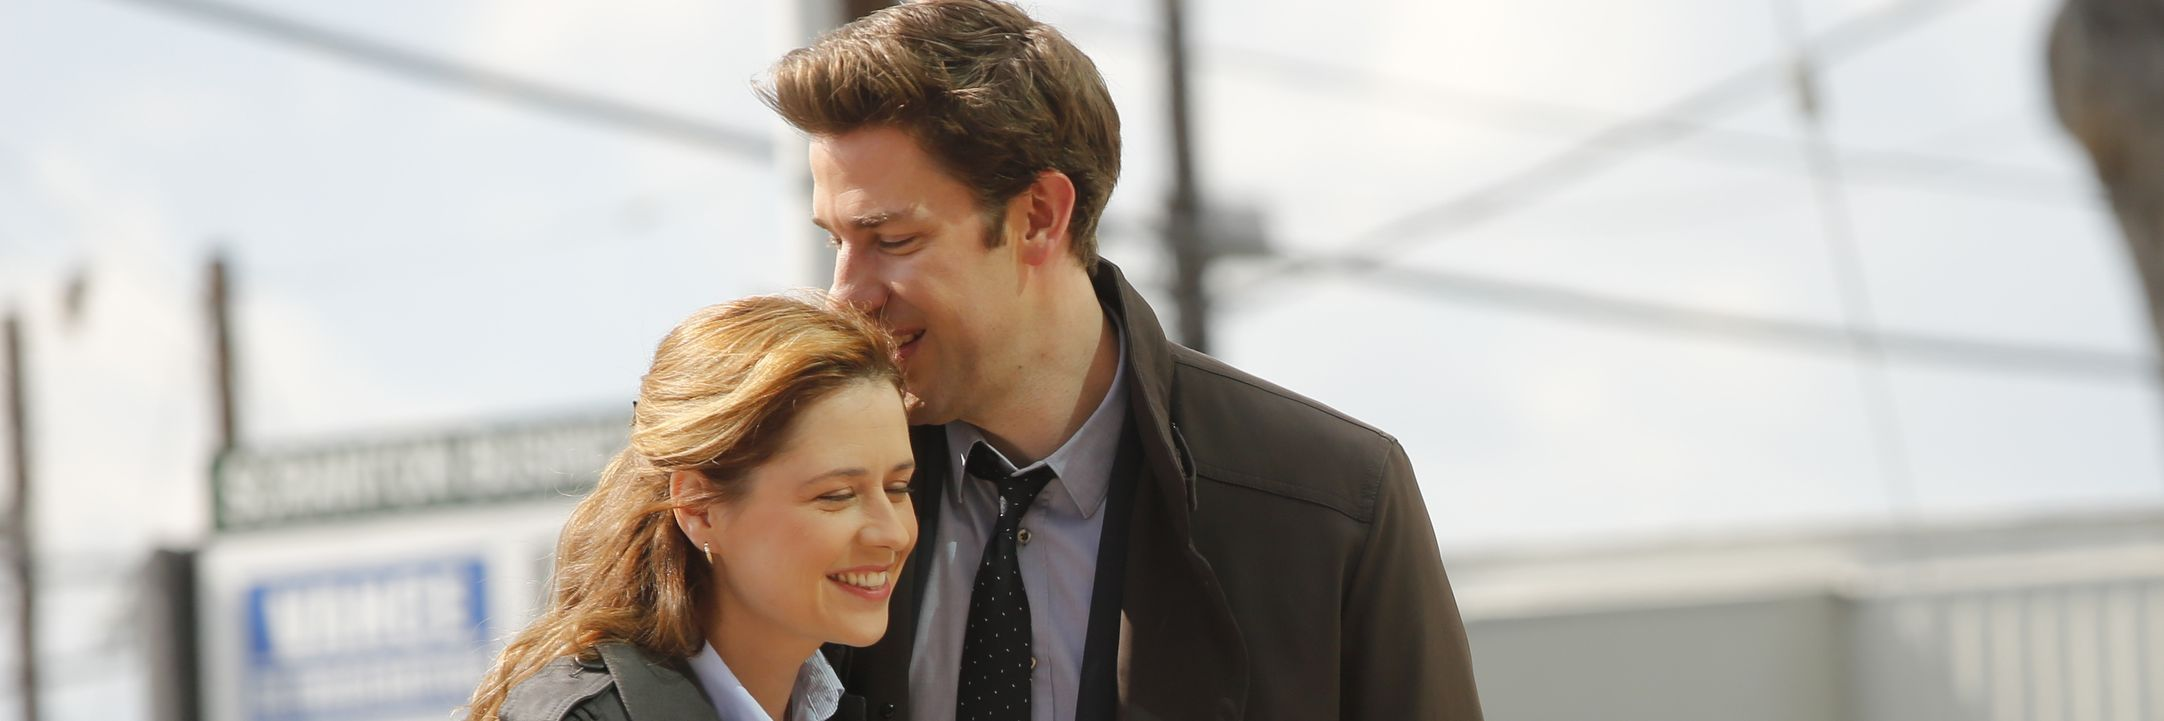 Jim and pam from the office hookup in real life